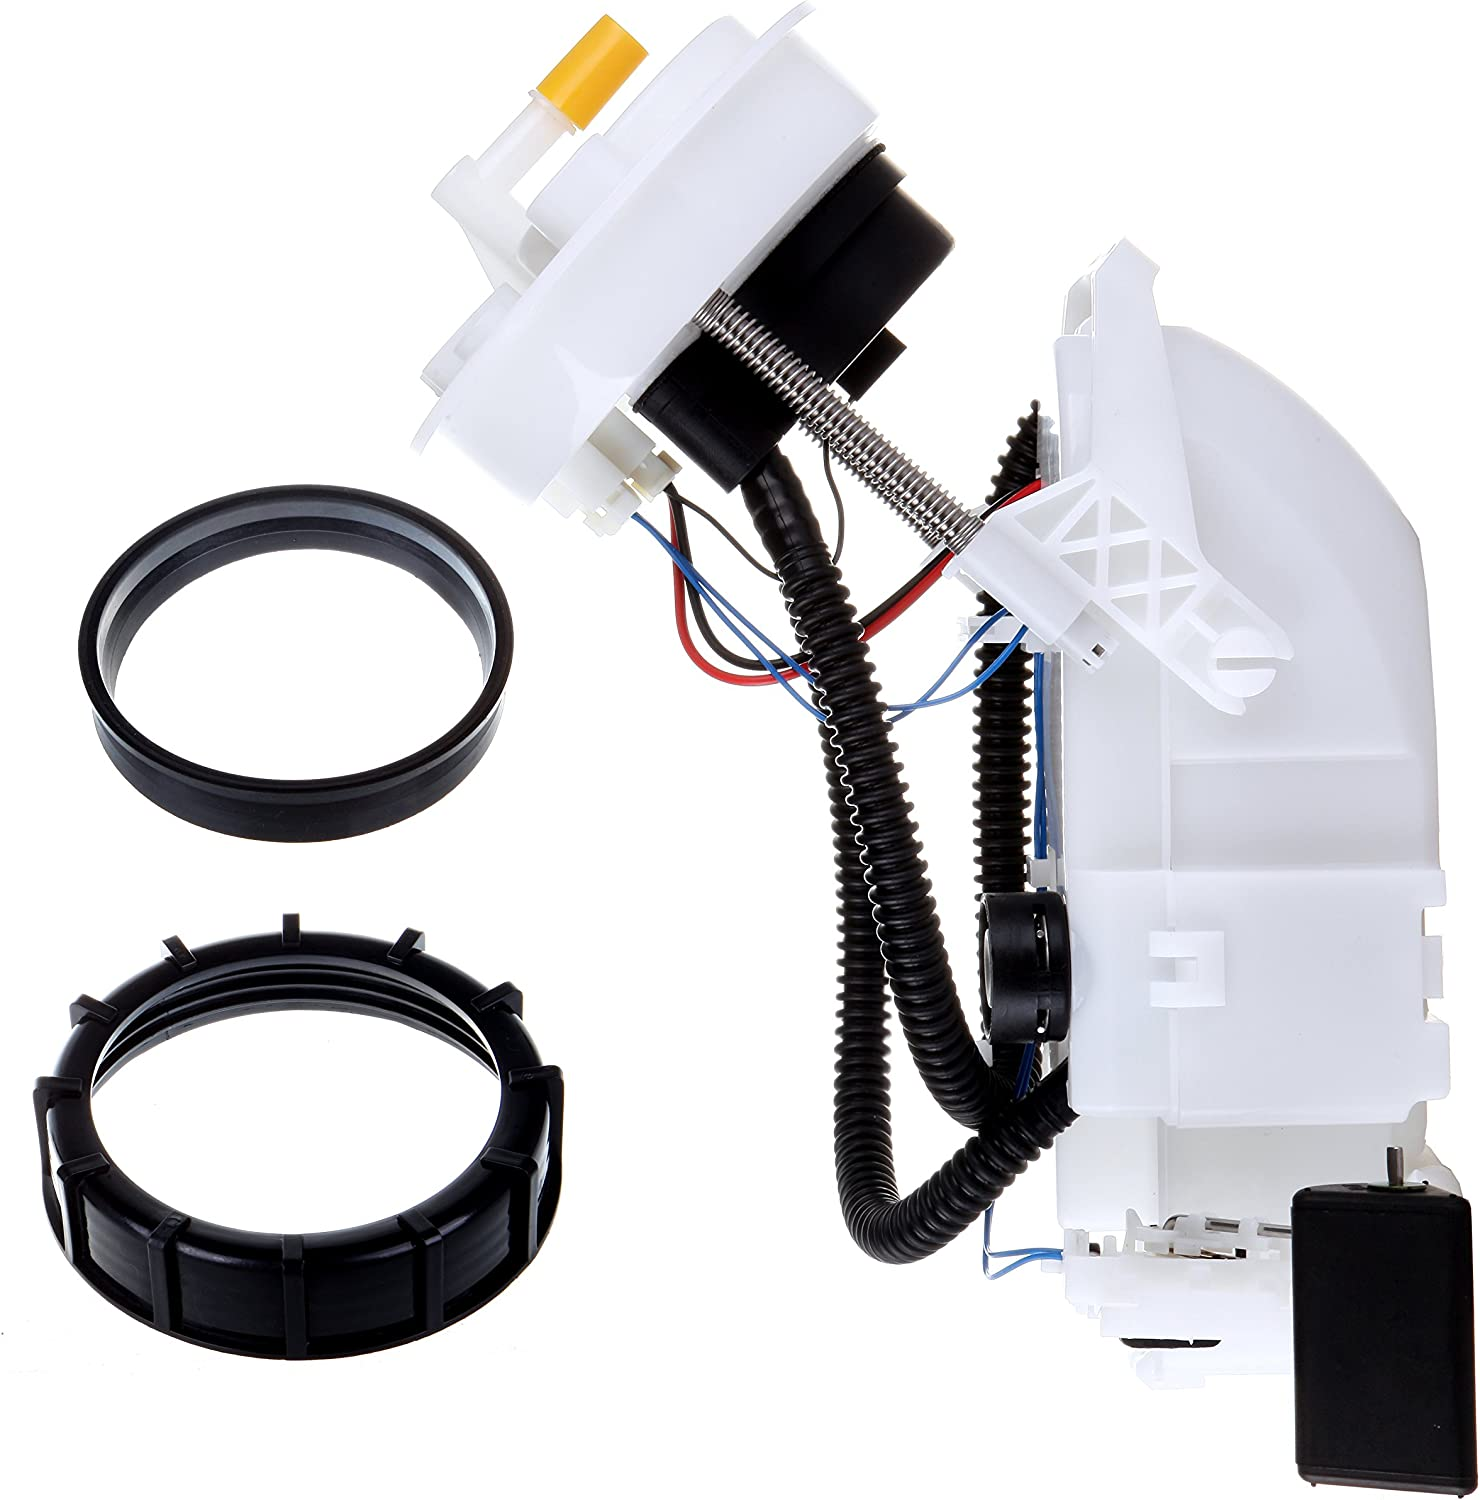 SCITOO E8566M Fuel Pump Electrical Assembly High Performance fit Honda Civic 110828-5206-1830584961